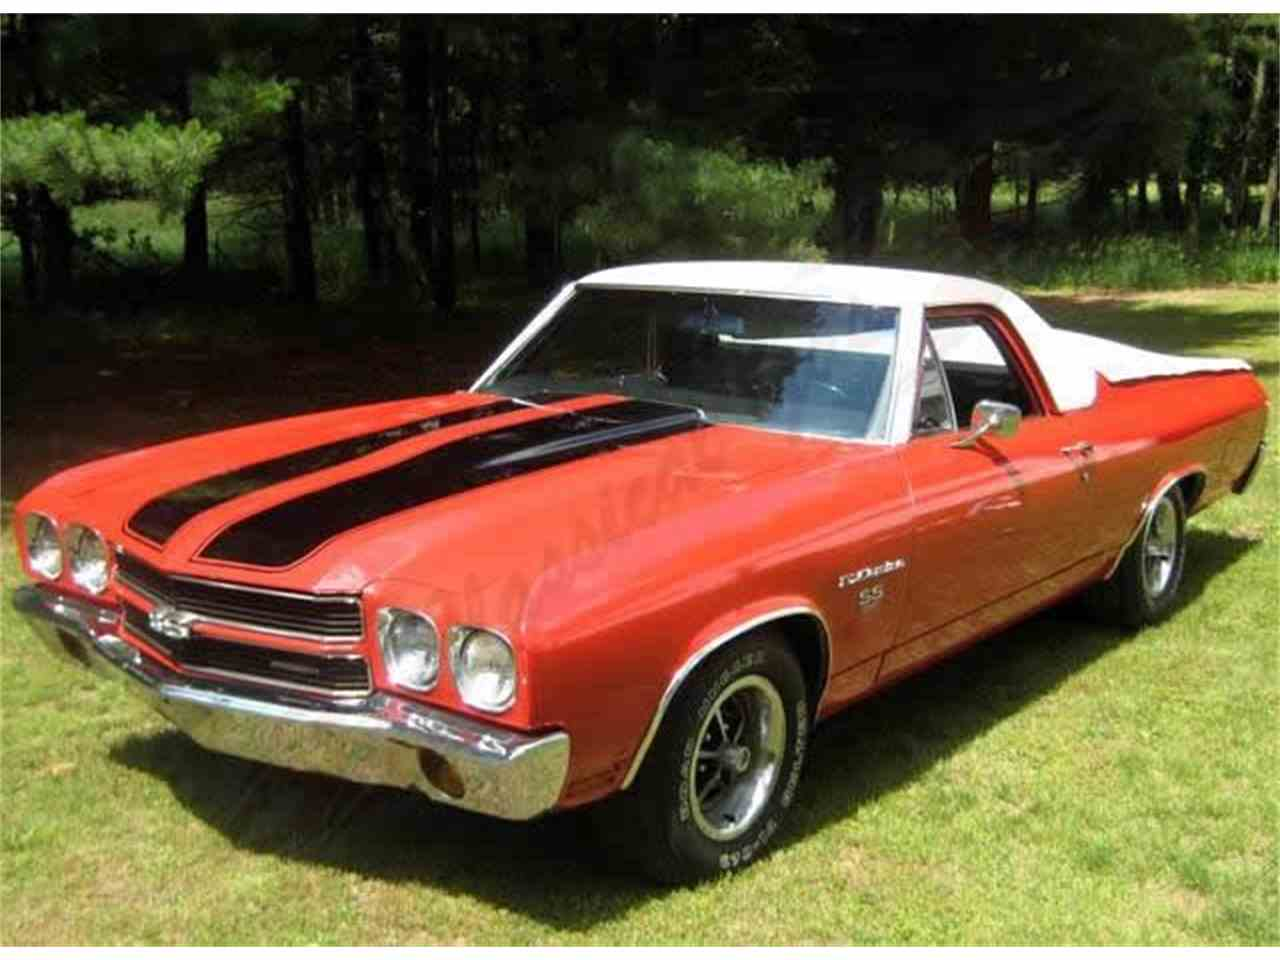 1970 chevrolet el camino ss for sale cc 427570. Black Bedroom Furniture Sets. Home Design Ideas